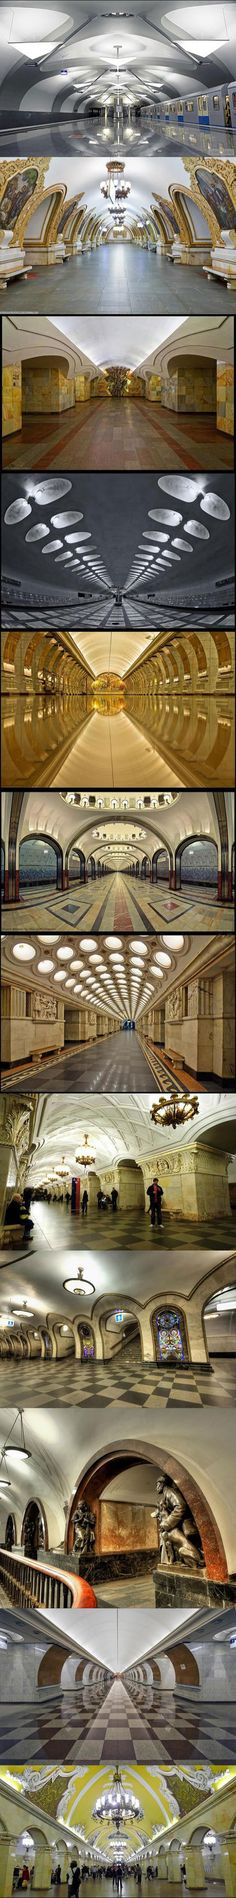 """Bucket list No 5 visit Moscow and ride the metro to all the stations described in the """"Metro 2033"""" story. And also enjoy the beauty of those stations!"""